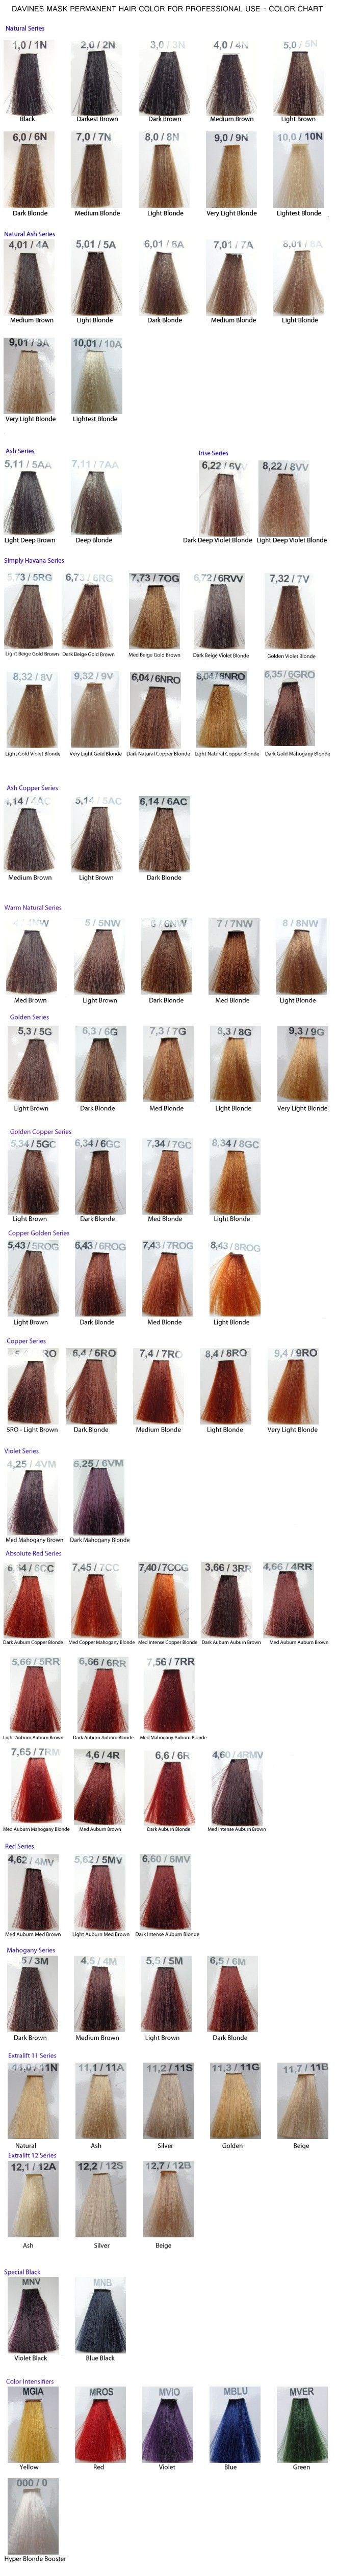 Davines Mask Color Chart Hair Pinterest Colour Chart Chart